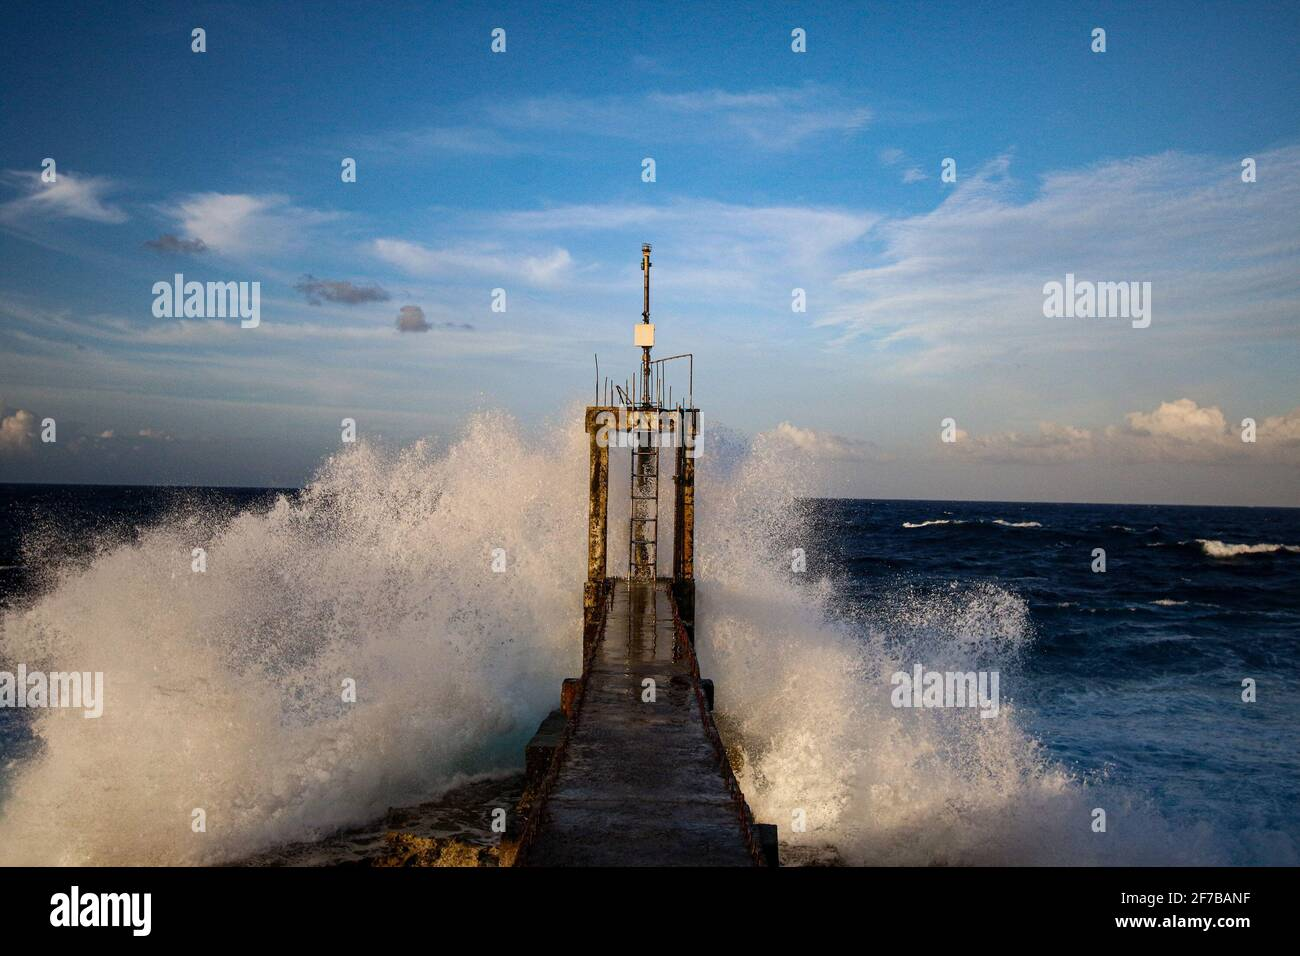 This used to be a tsunami warning device situated in Calicoan Guiuan Eastern Samar. Guiuan was the site of first-landfall during Super Typhoon Yolanda on November 8, 2013 and consider as one of the vulnerable provinces to climate change impacts. Philippines. Stock Photo